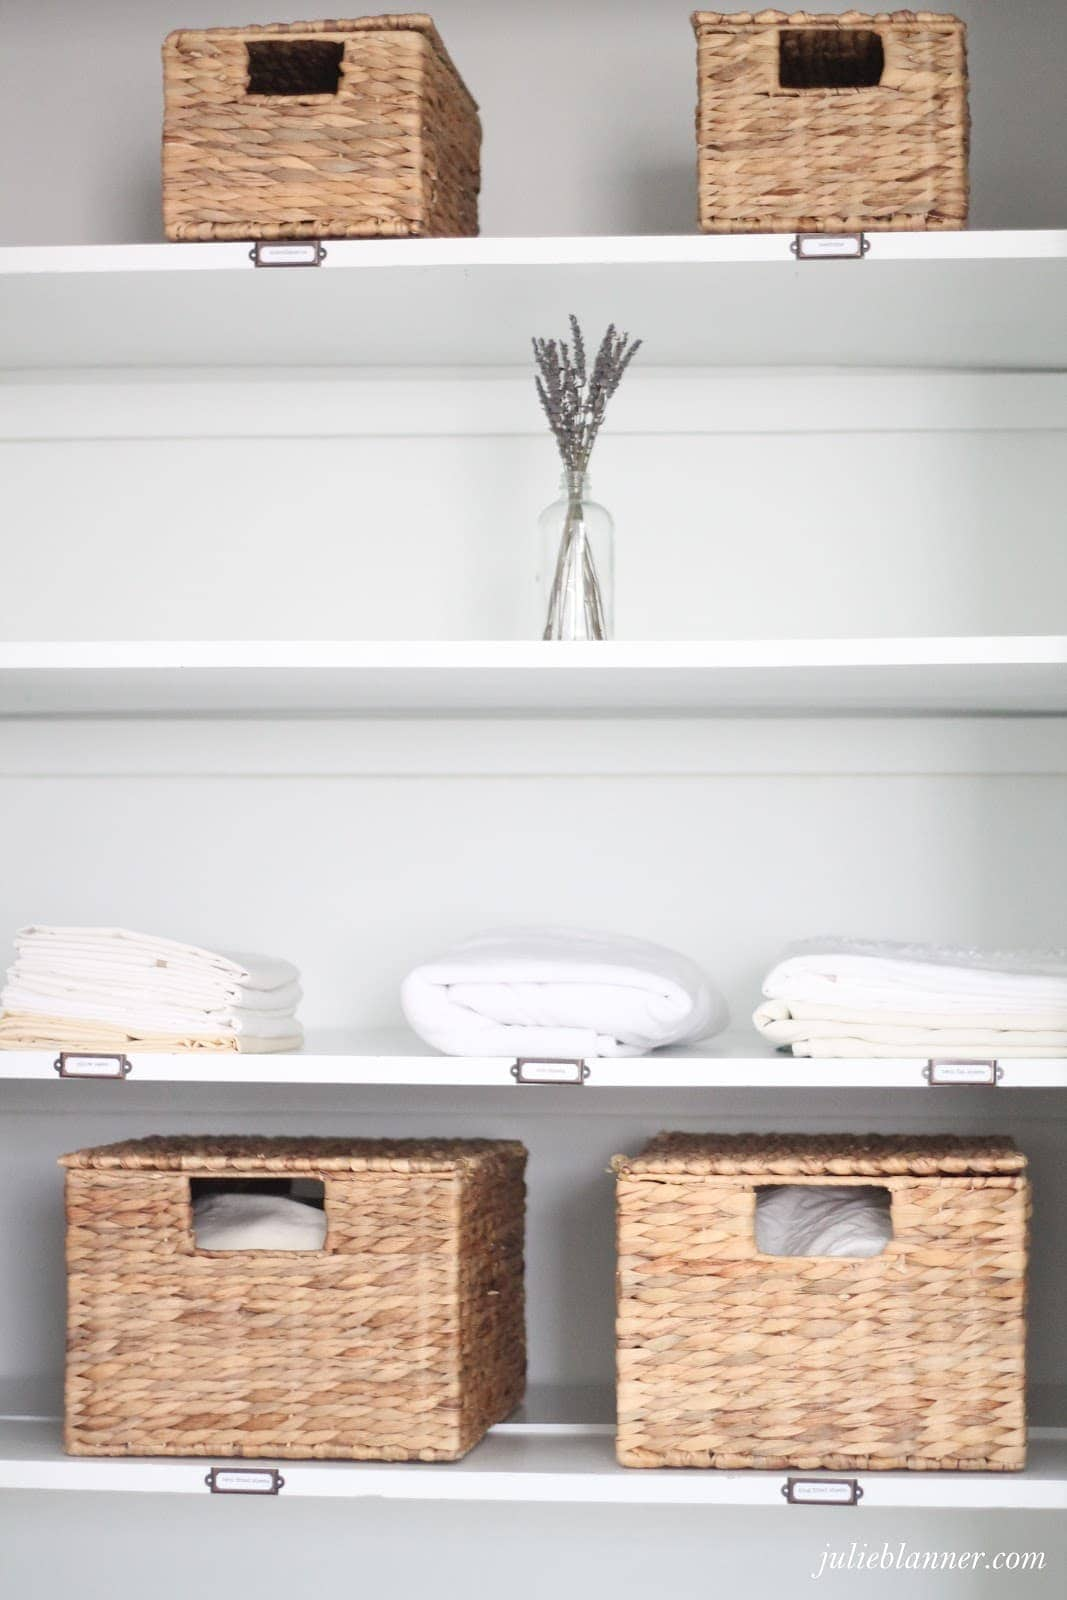 Superbe The Smaller Baskets Hold Medicine And First Aid Items That We Donu0027t Use  Often And The Other Holds Items Like Linen Spray, Room Spray And Wrinkle  Releaser.